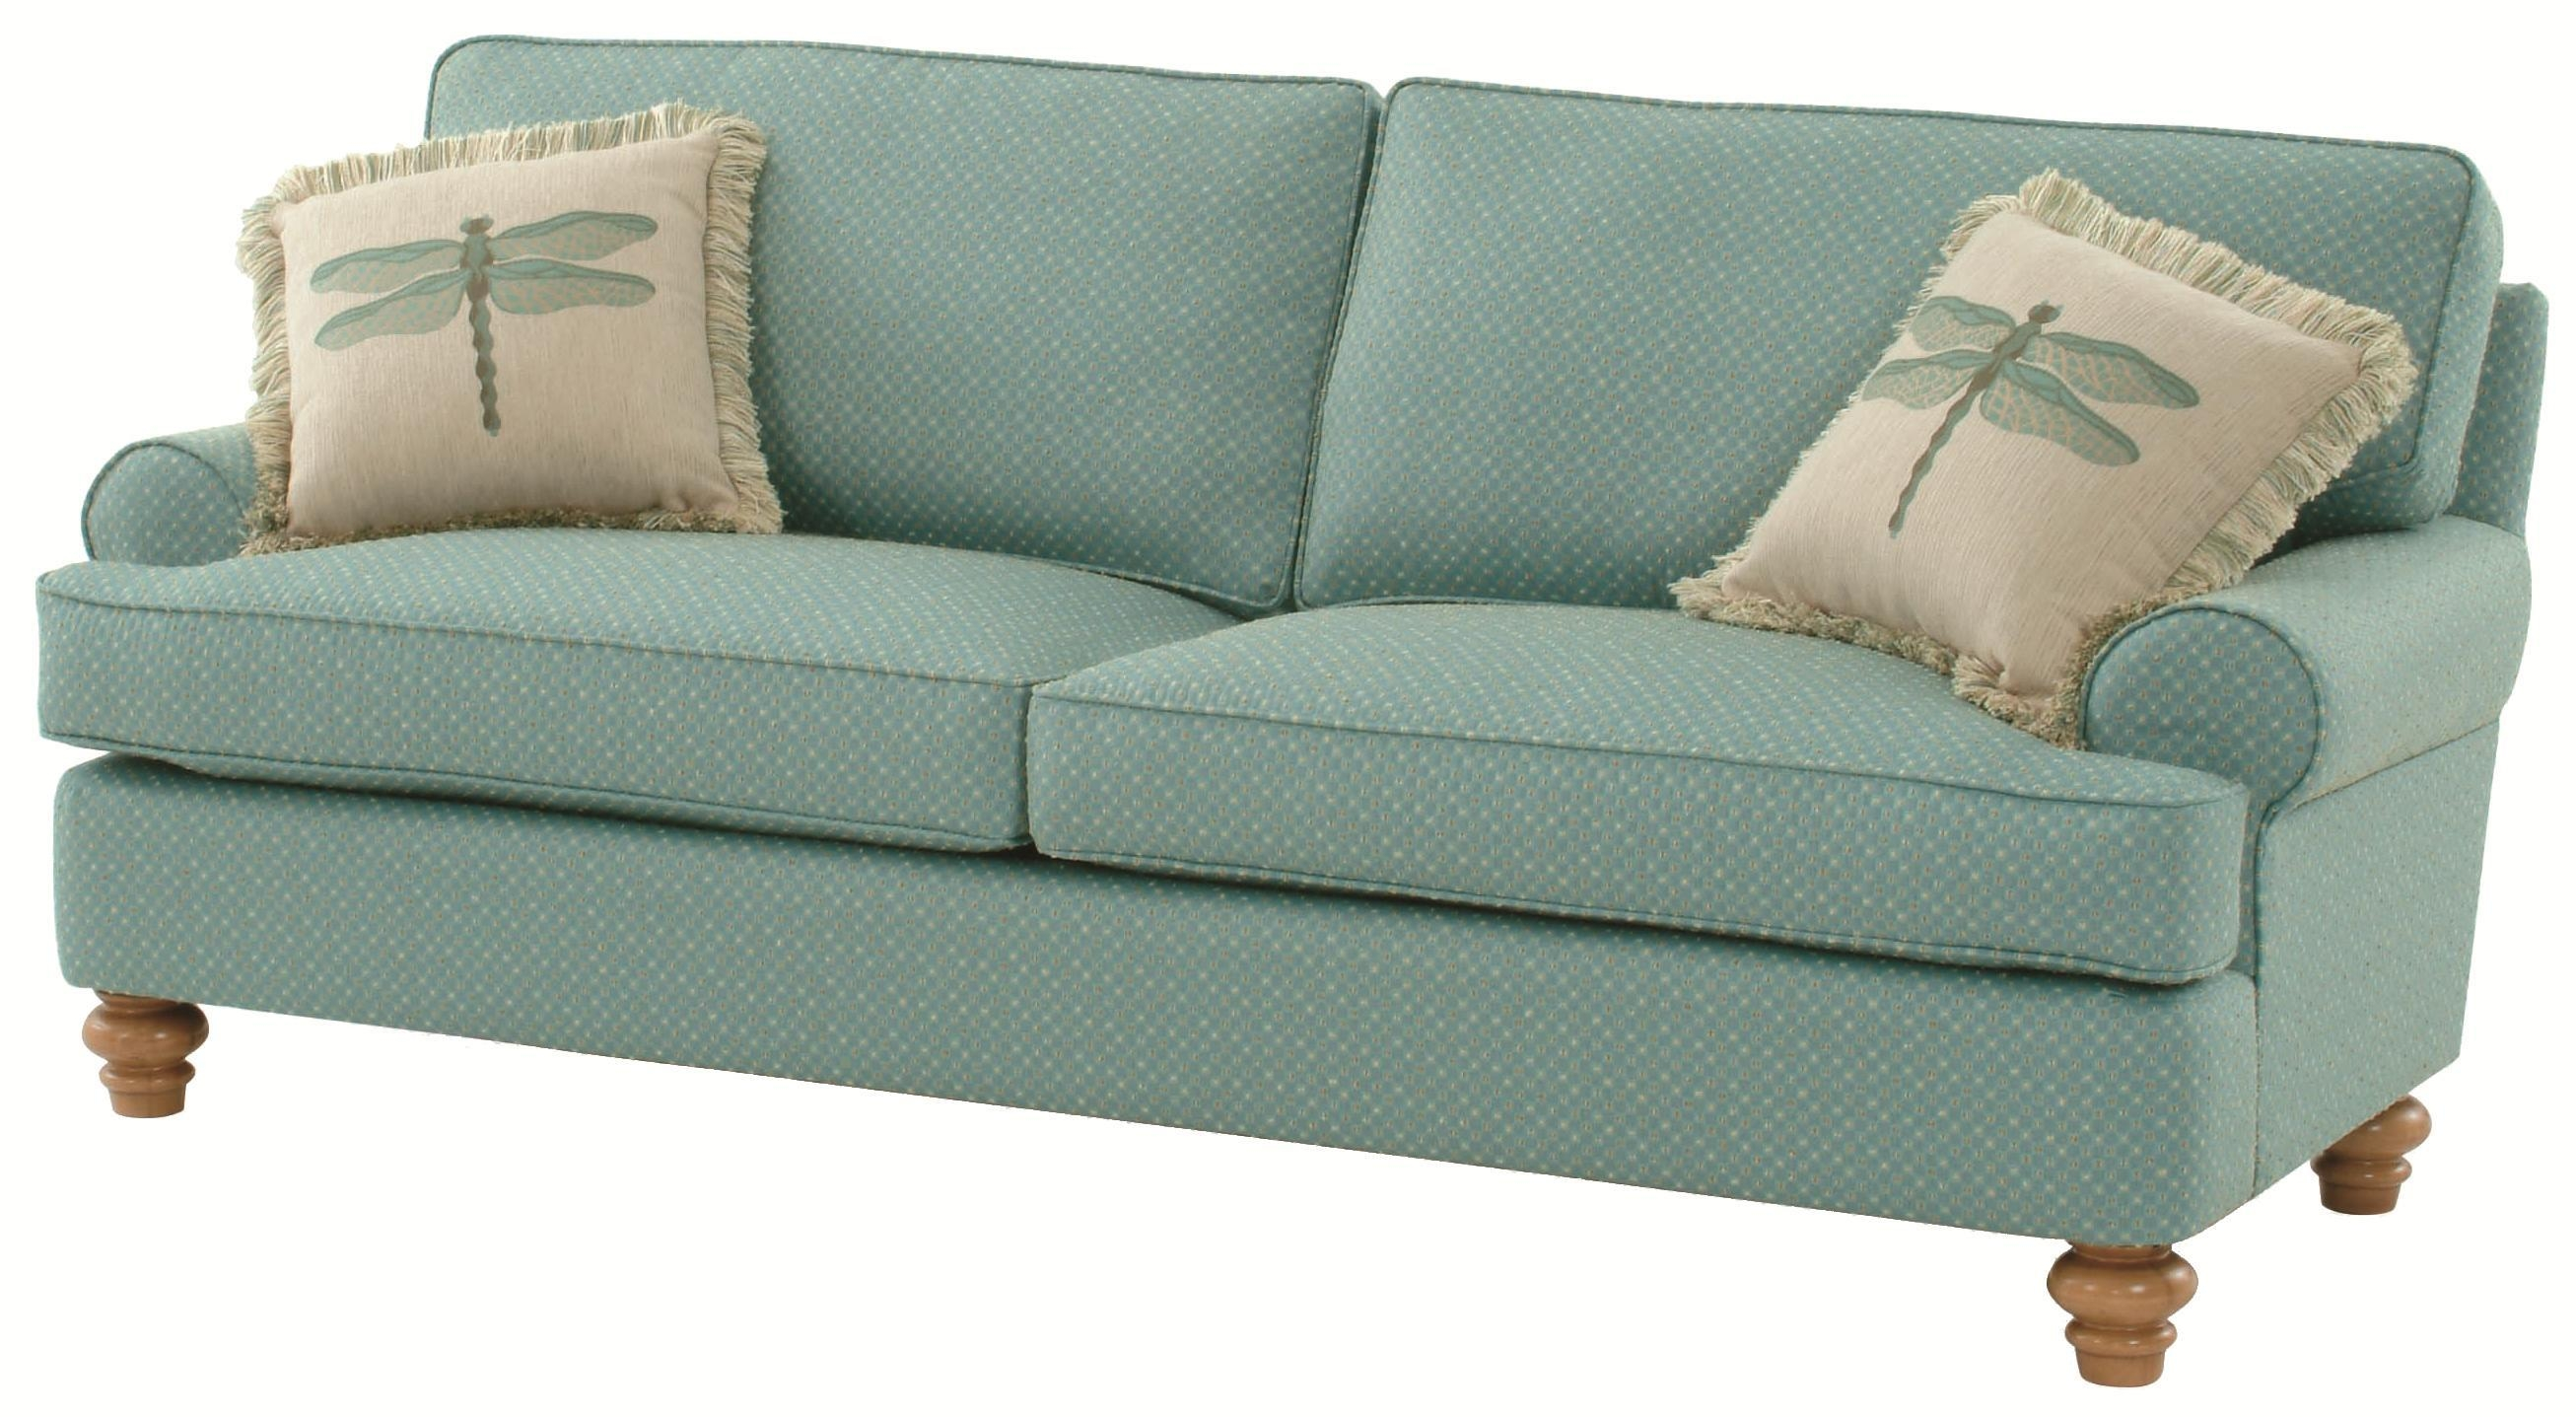 Braxton Culler Sofas & Accent Sofas Store – Dealer Locator With Braxton Culler Sofas (View 3 of 20)